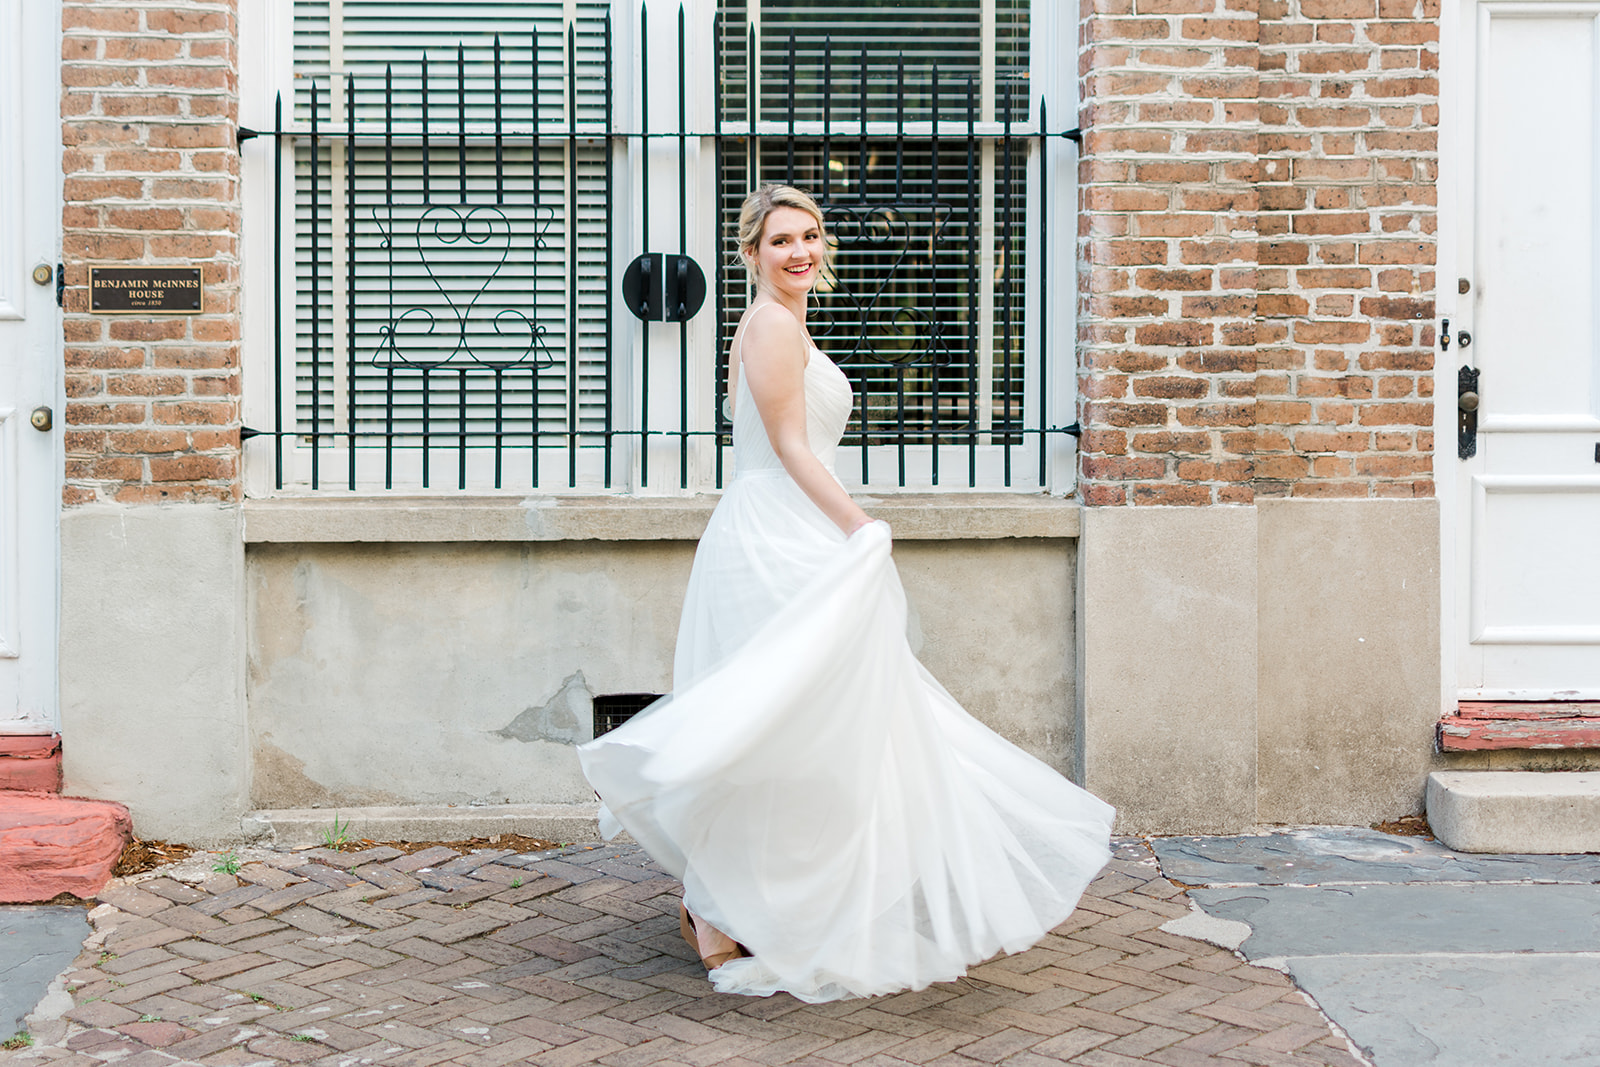 bridal-weight-loss-getting-fit-for-your-wedding-day-how-to-get-ready-for-your-wedding.jpg